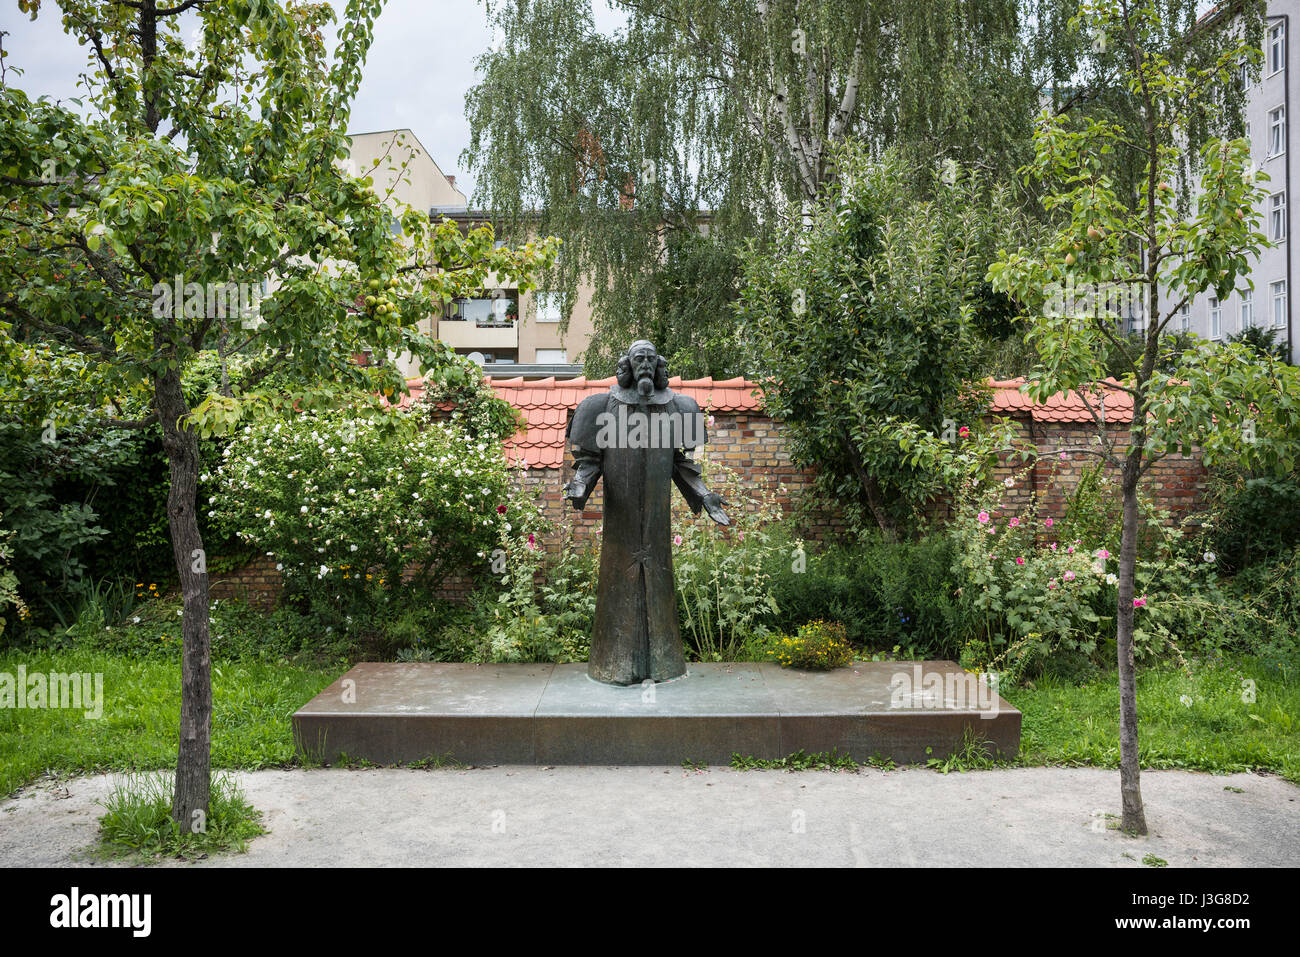 Garten berlin  Berlin. Germany. Comenius Garten. Statue of Johann Amos Comenius ...